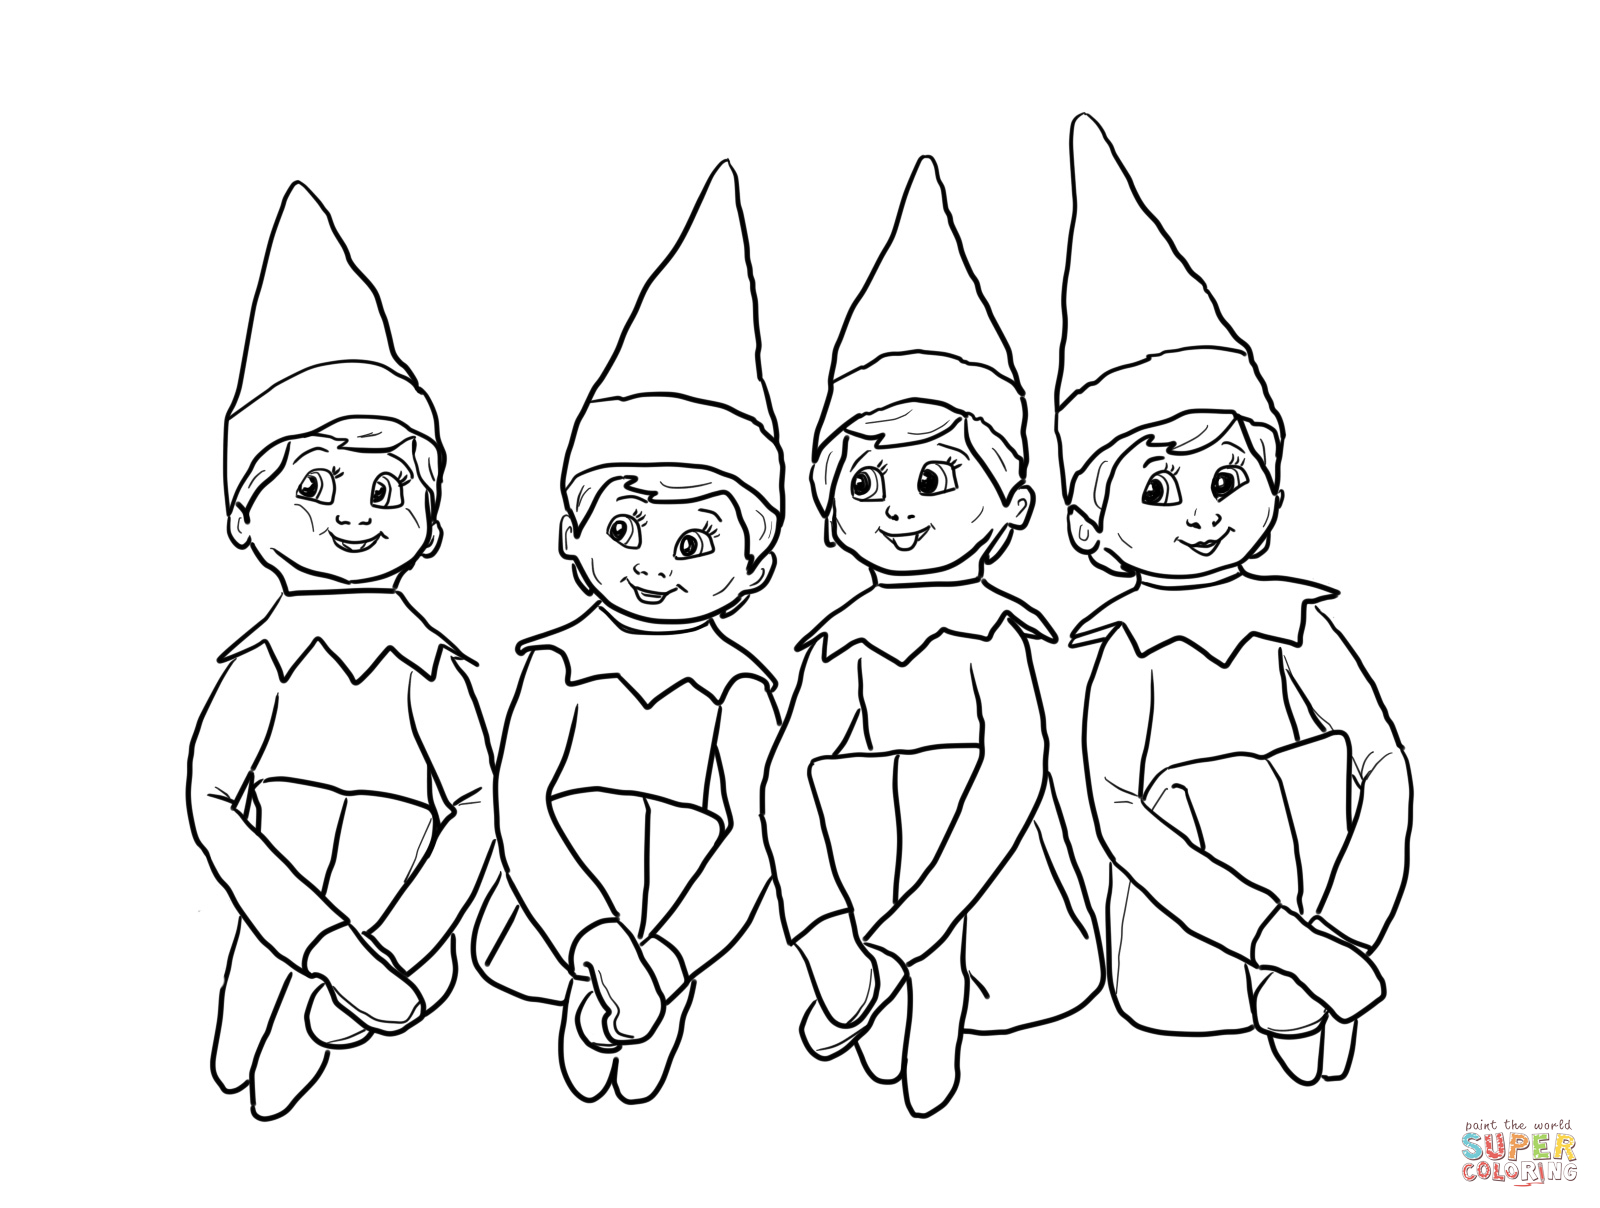 1600x1208 Mainstream Elf On A Shelf Coloring Pages Free Revolutionary